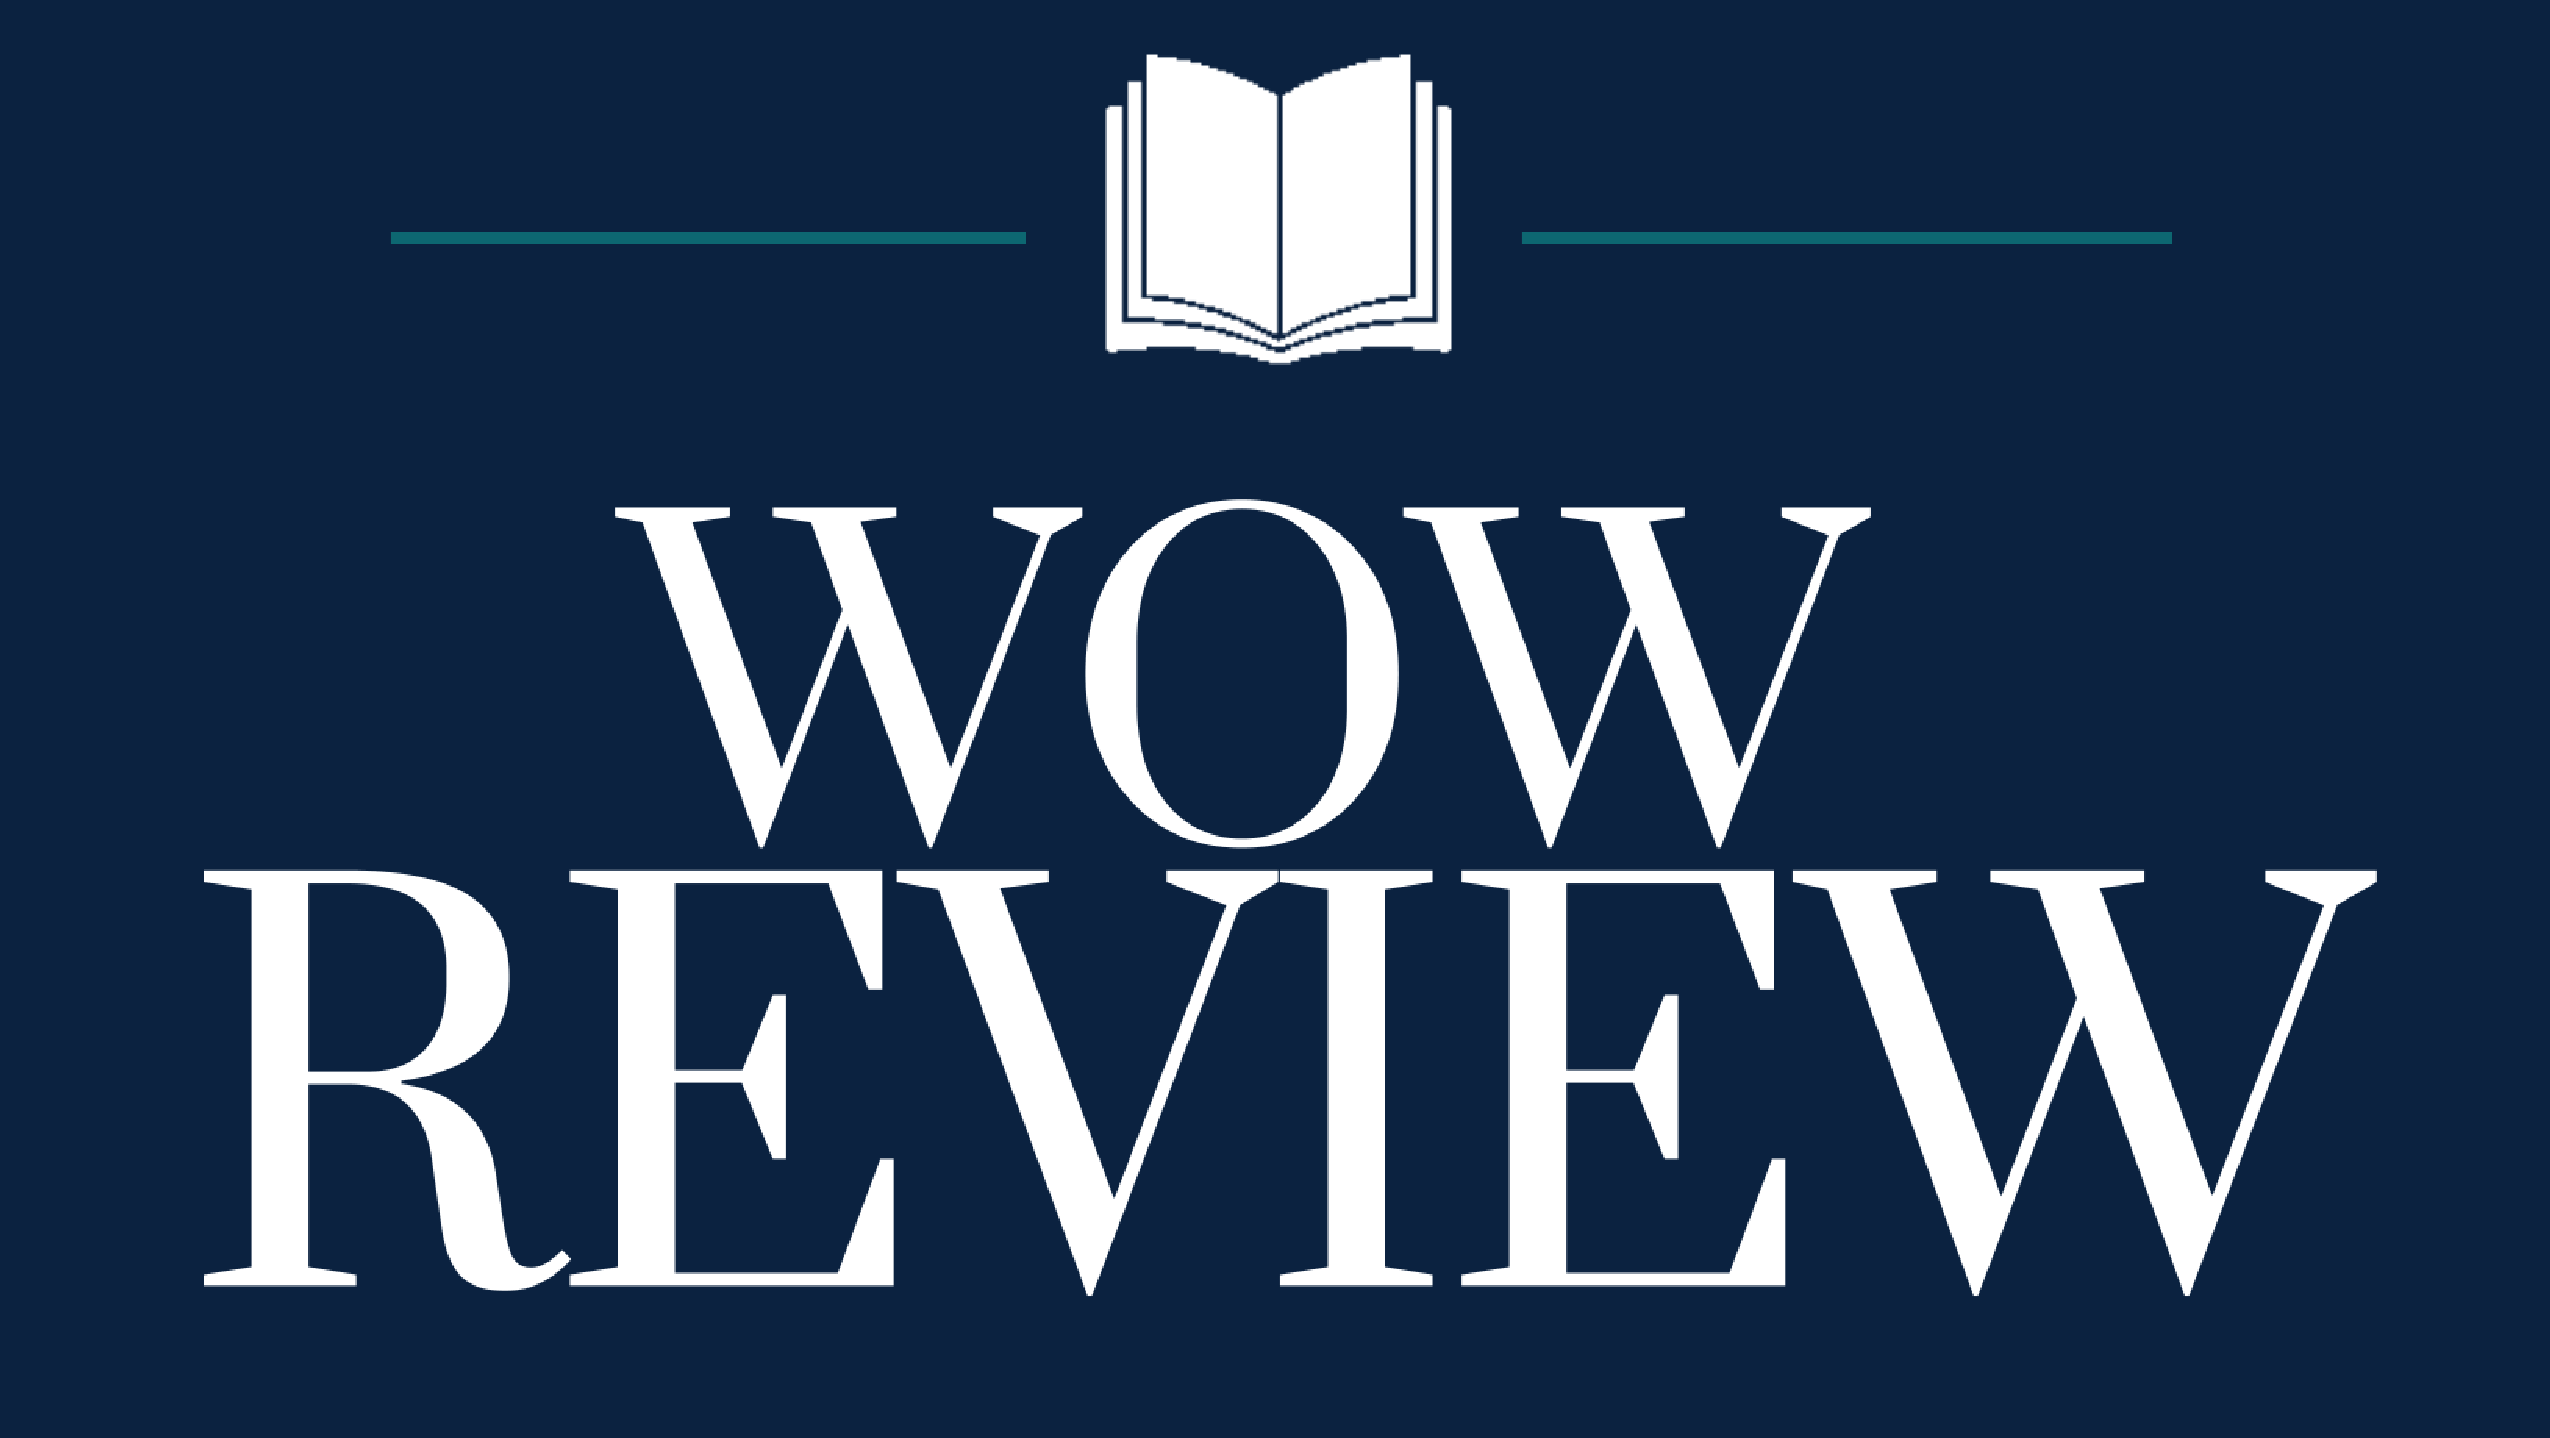 WOW Review banner, title